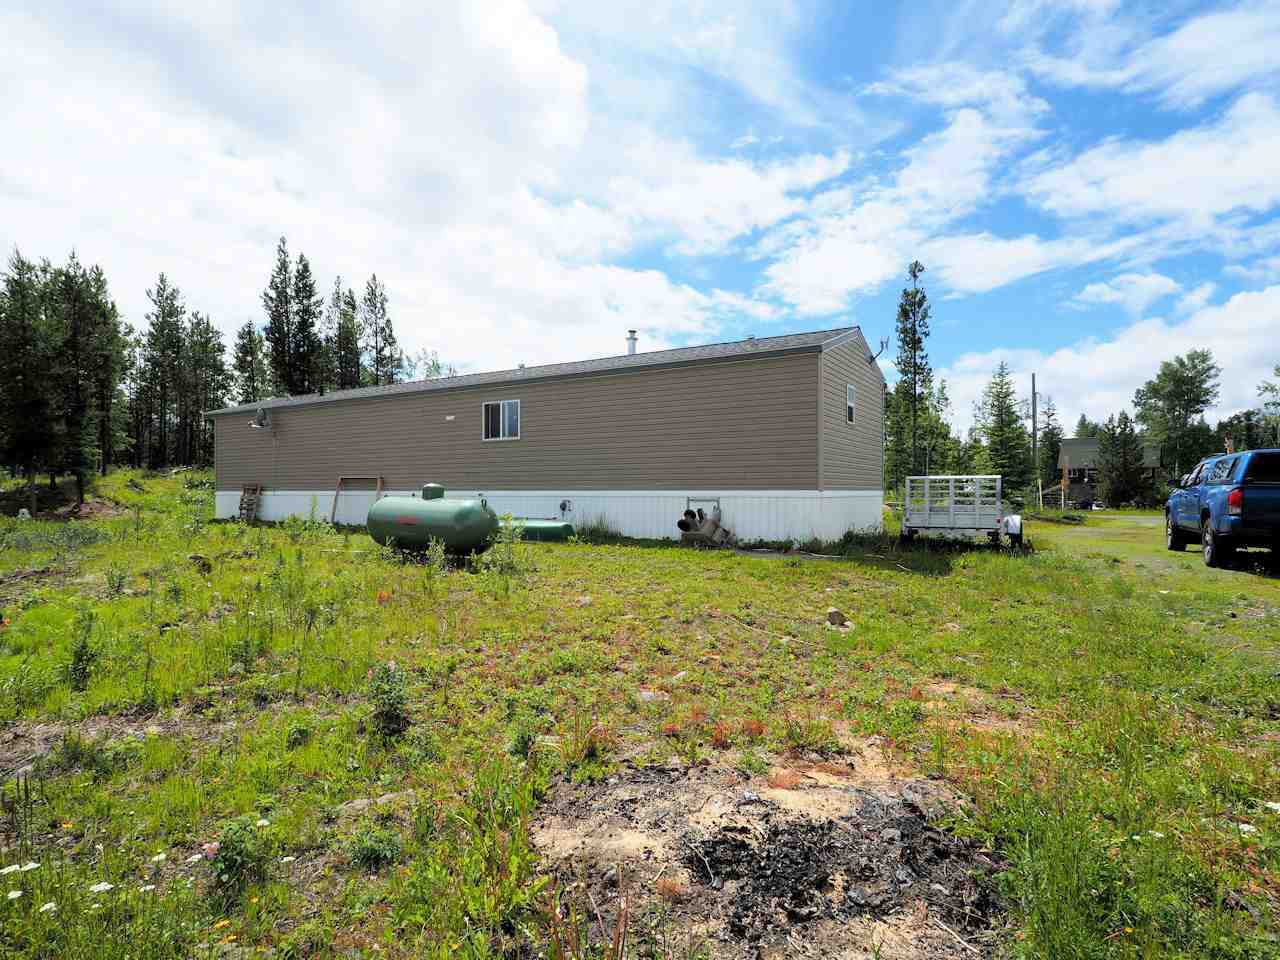 Photo 3: Photos: 7125 93 MILE LOOP Road in Lone Butte: Lone Butte/Green Lk/Watch Lk Manufactured Home for sale (100 Mile House (Zone 10))  : MLS®# R2473670